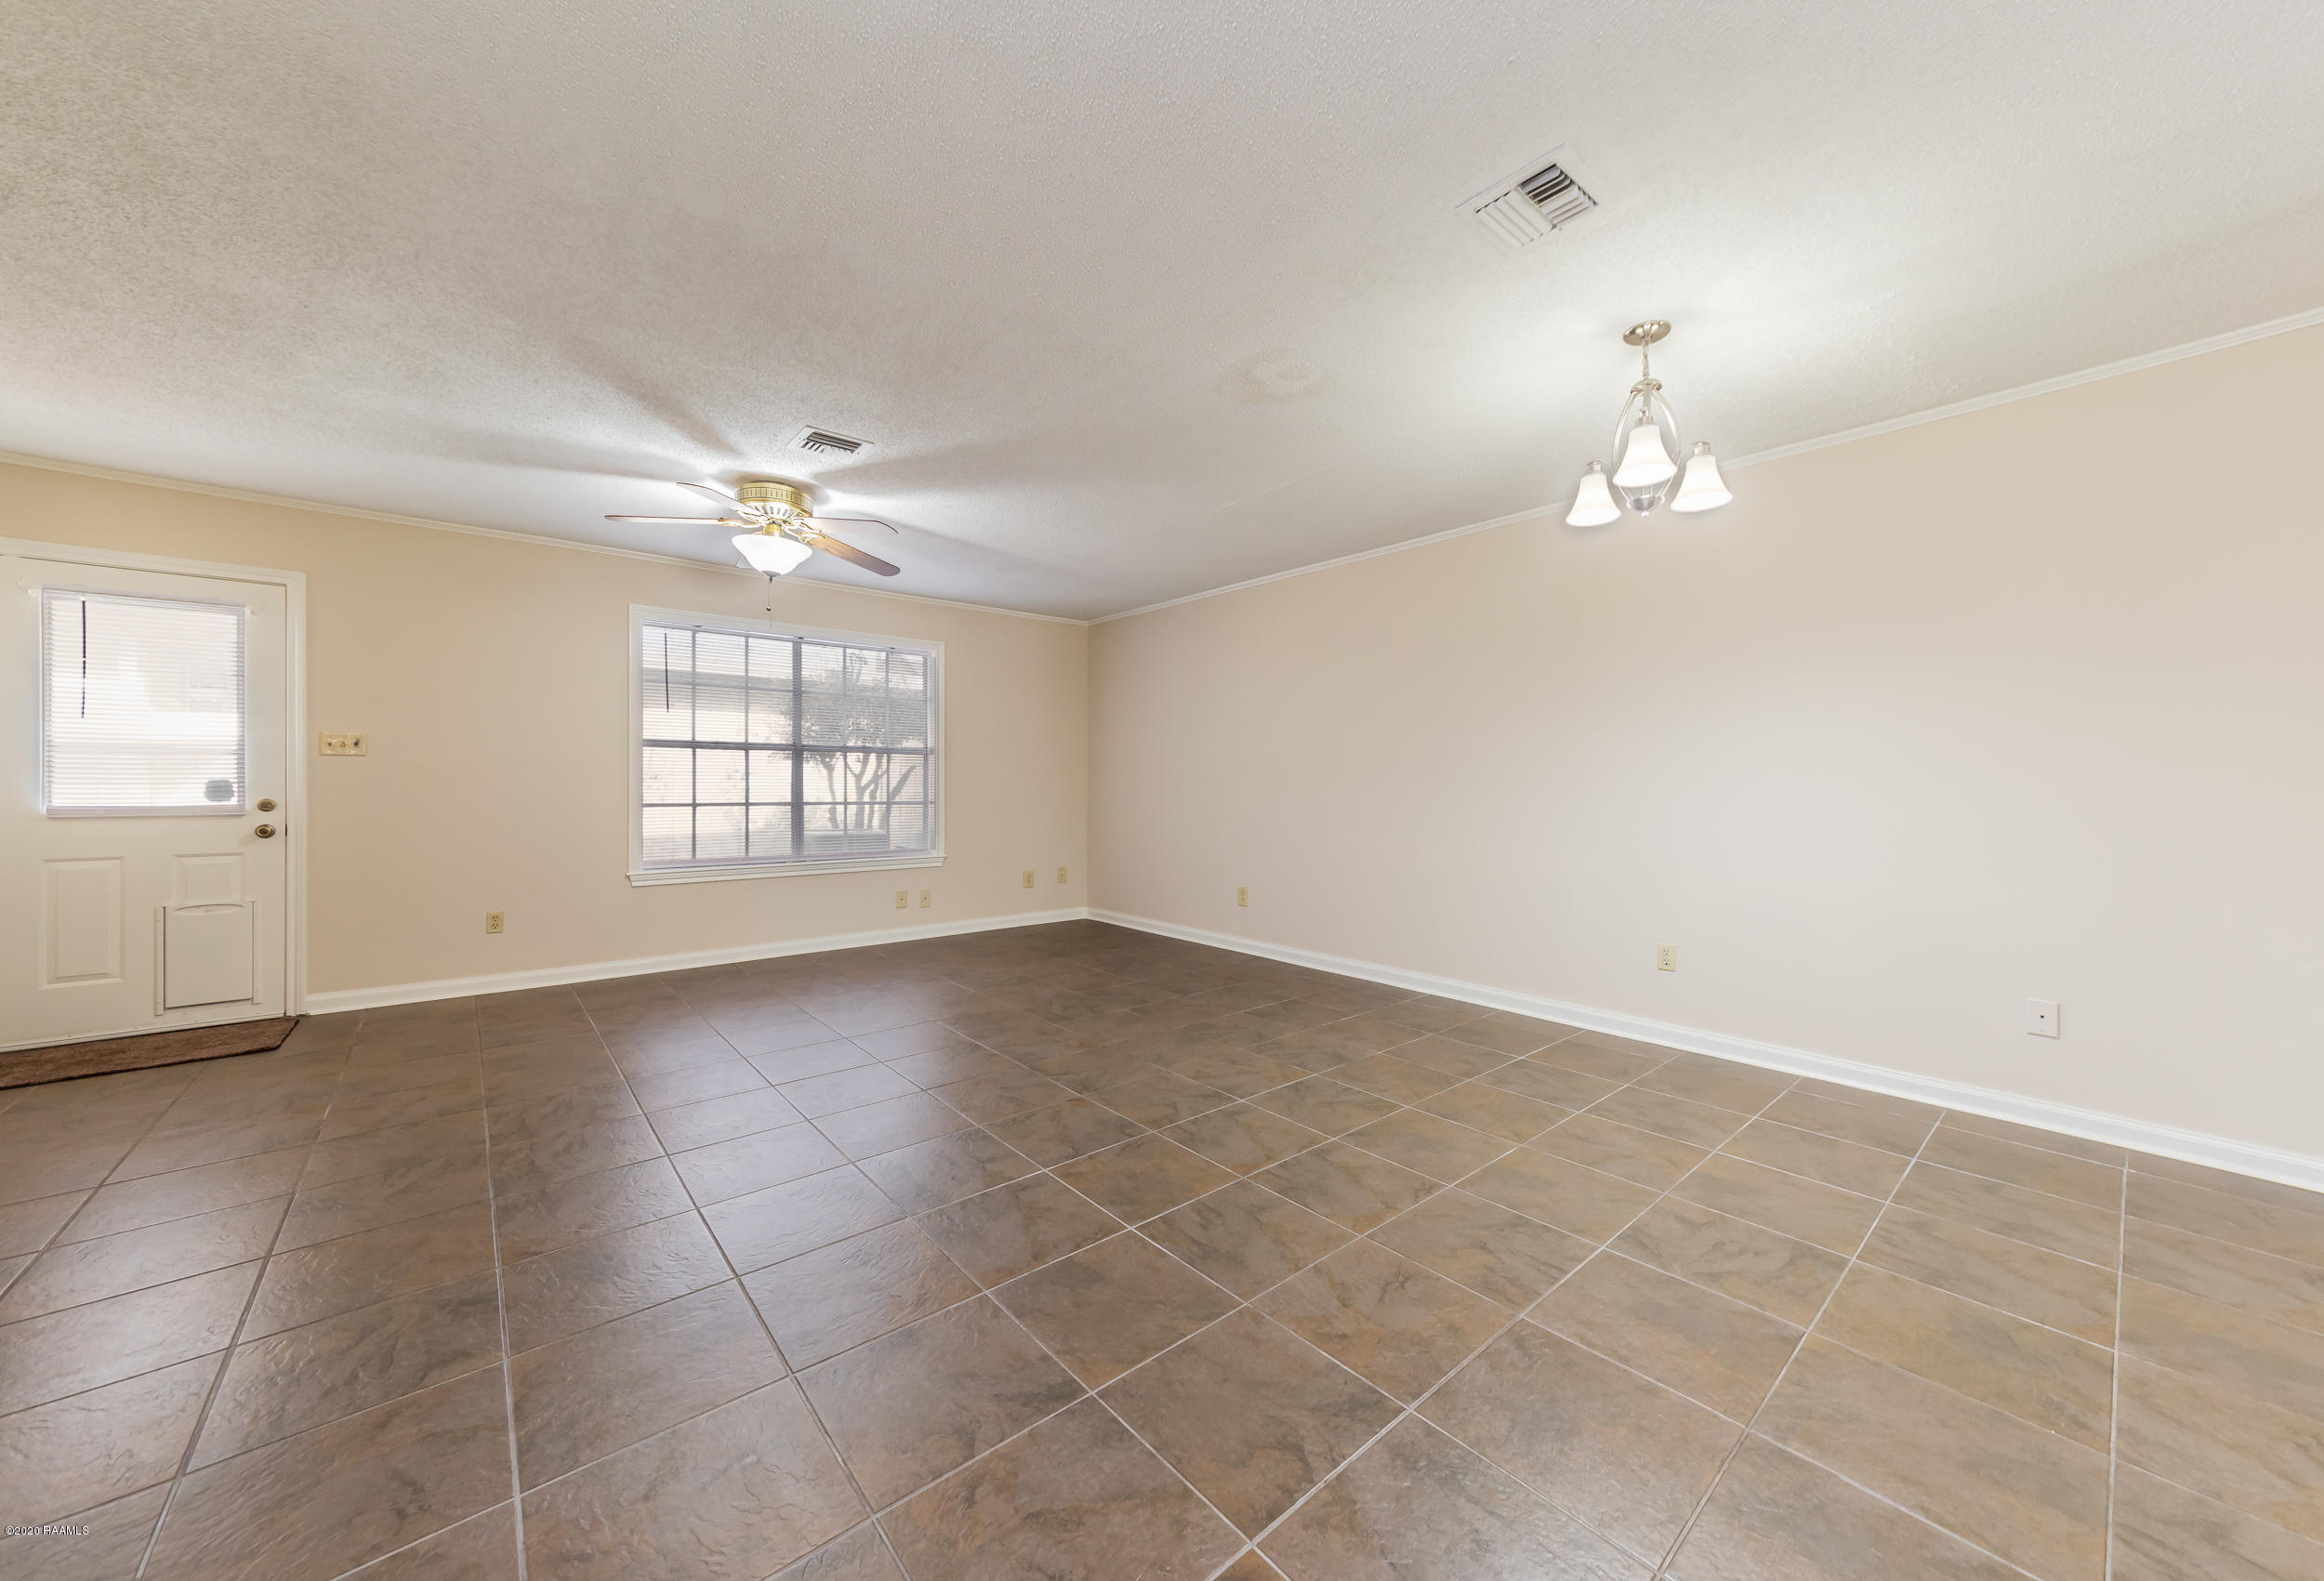 110 Molasses Row, Lafayette, LA 70508 Photo #8